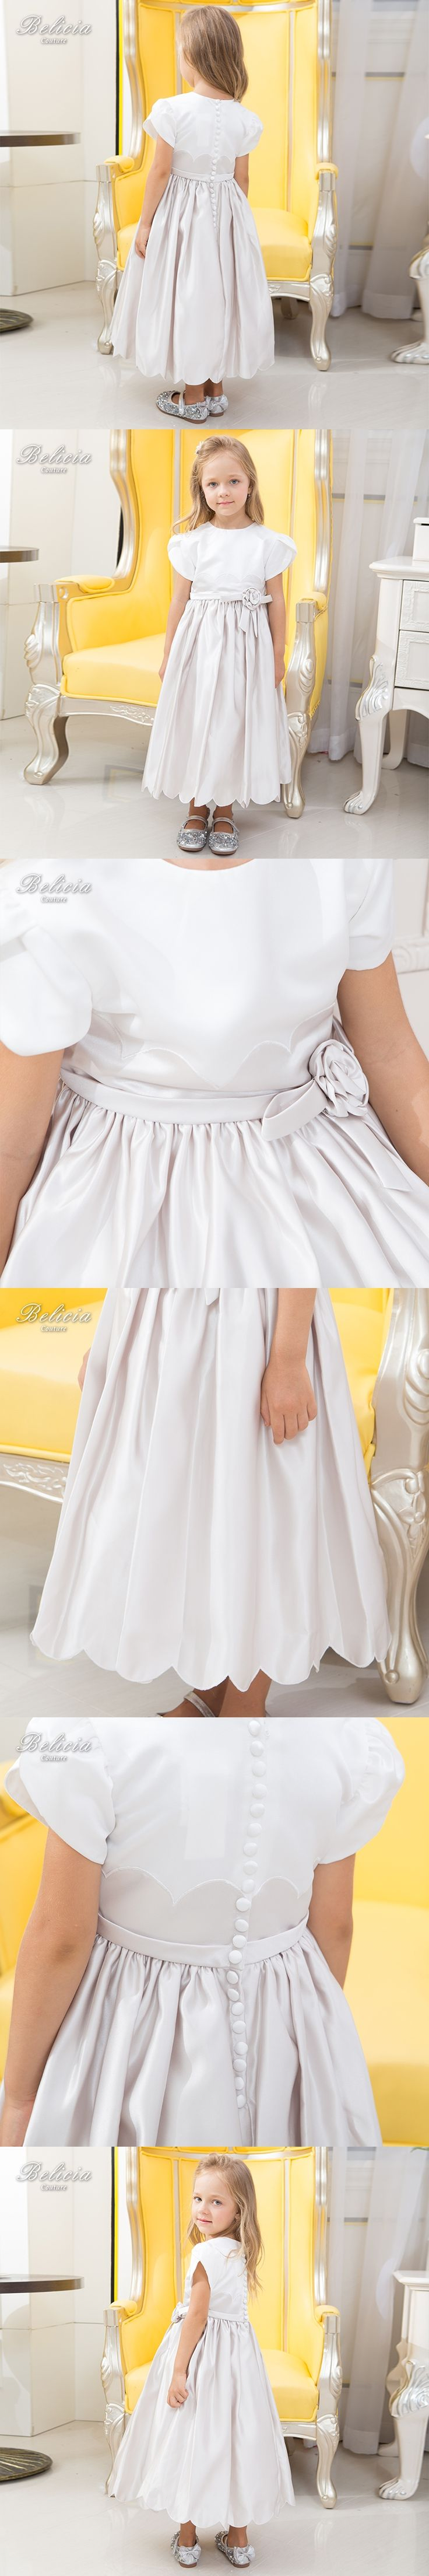 Belicia Couture Flower Girl Dresses For Wedding Flower Belt First Communion Dresses for Girls A Line Party Communion Dress